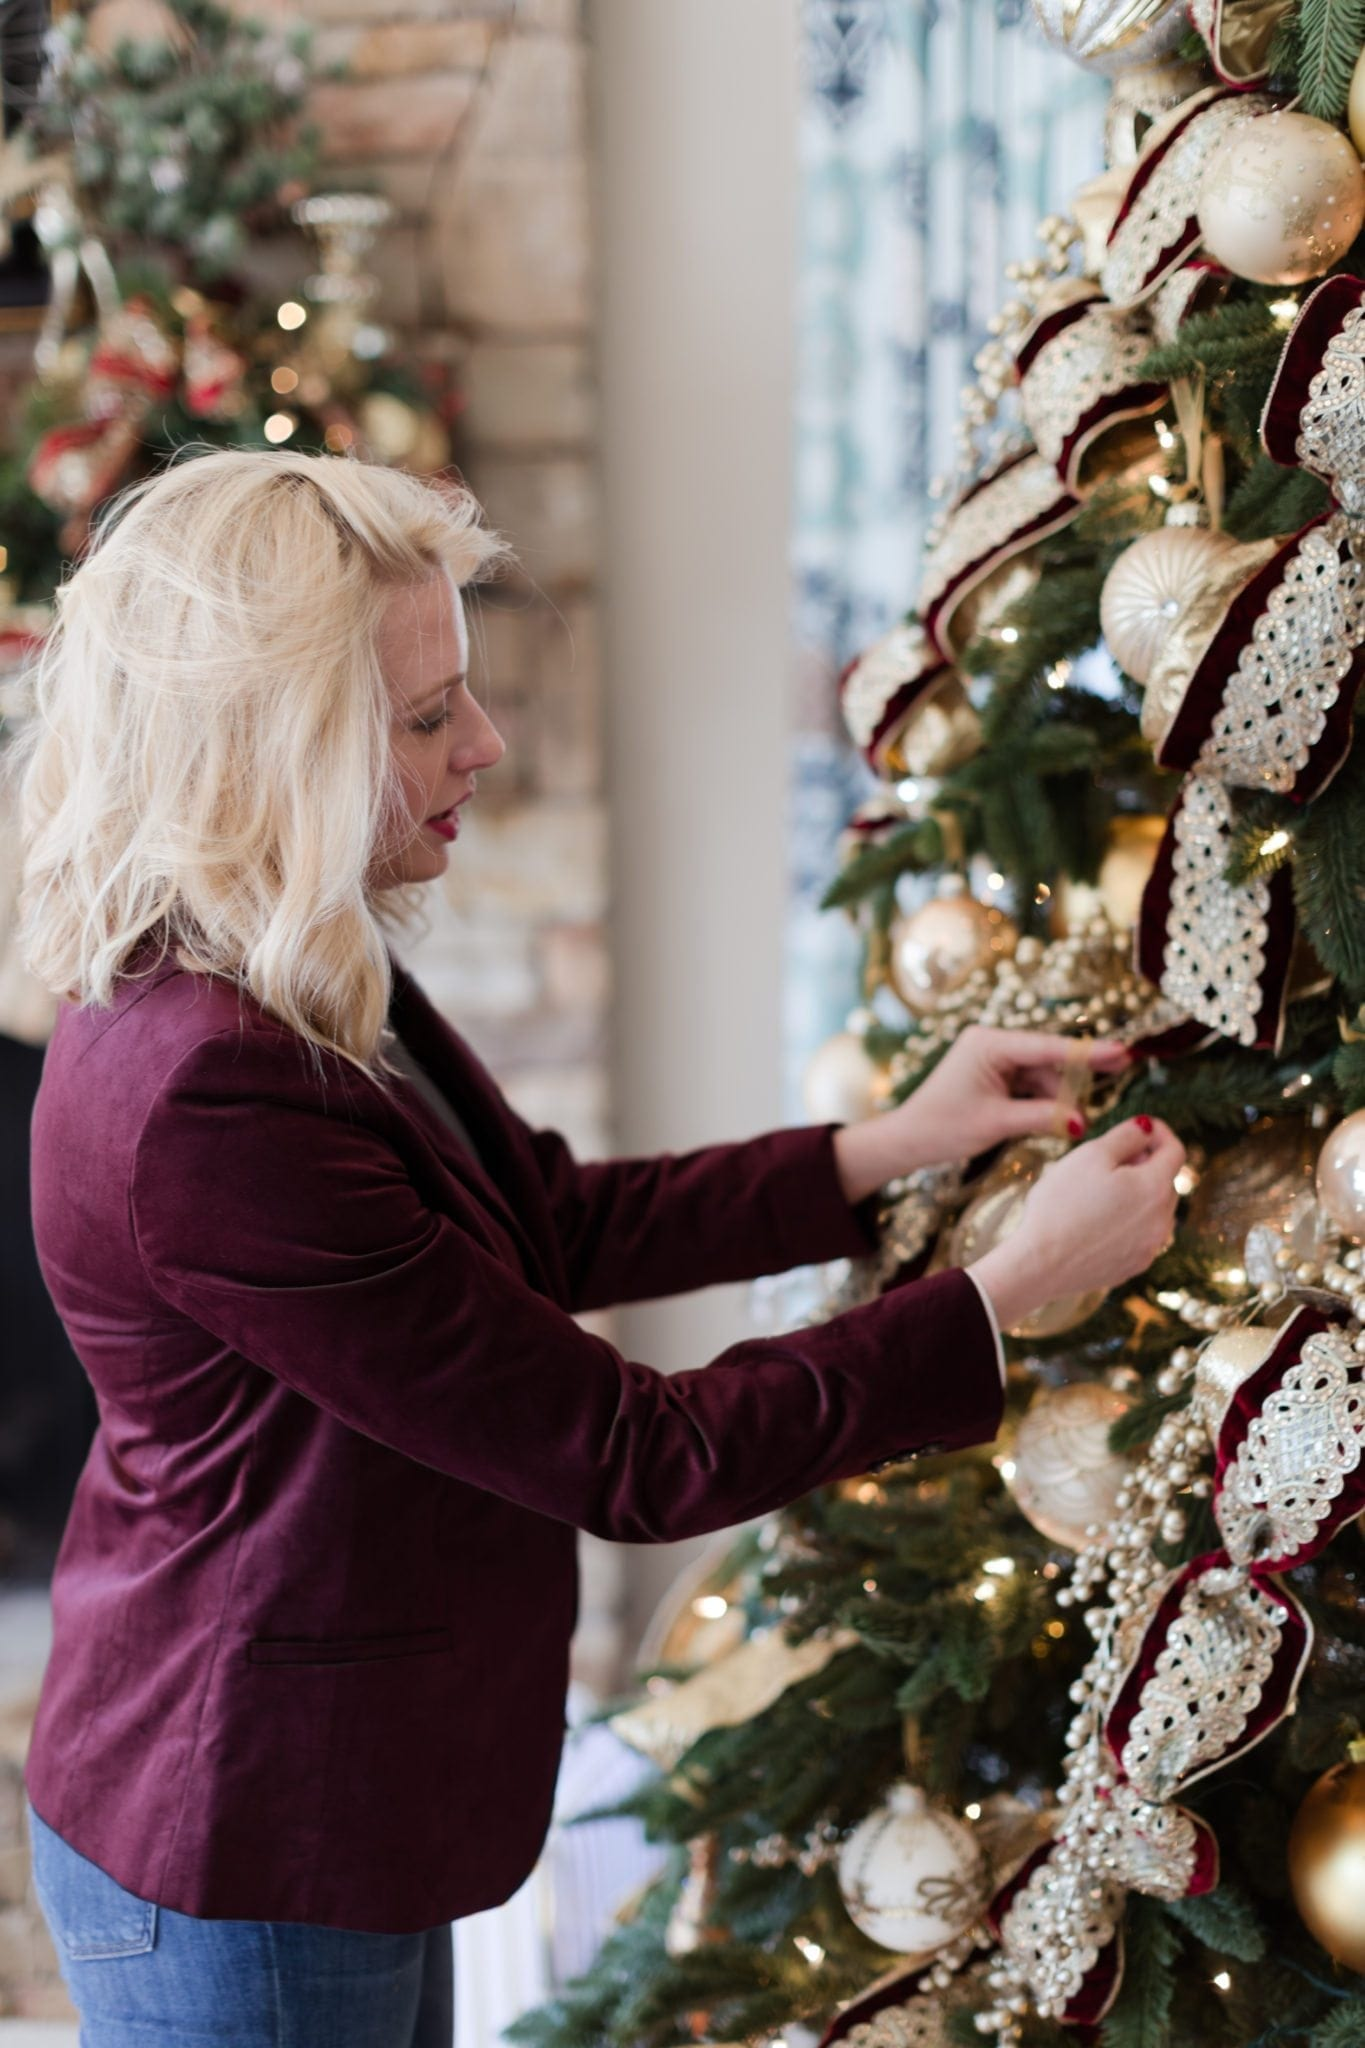 Decorating a Christmas tree in red velvet blazer and jeans.